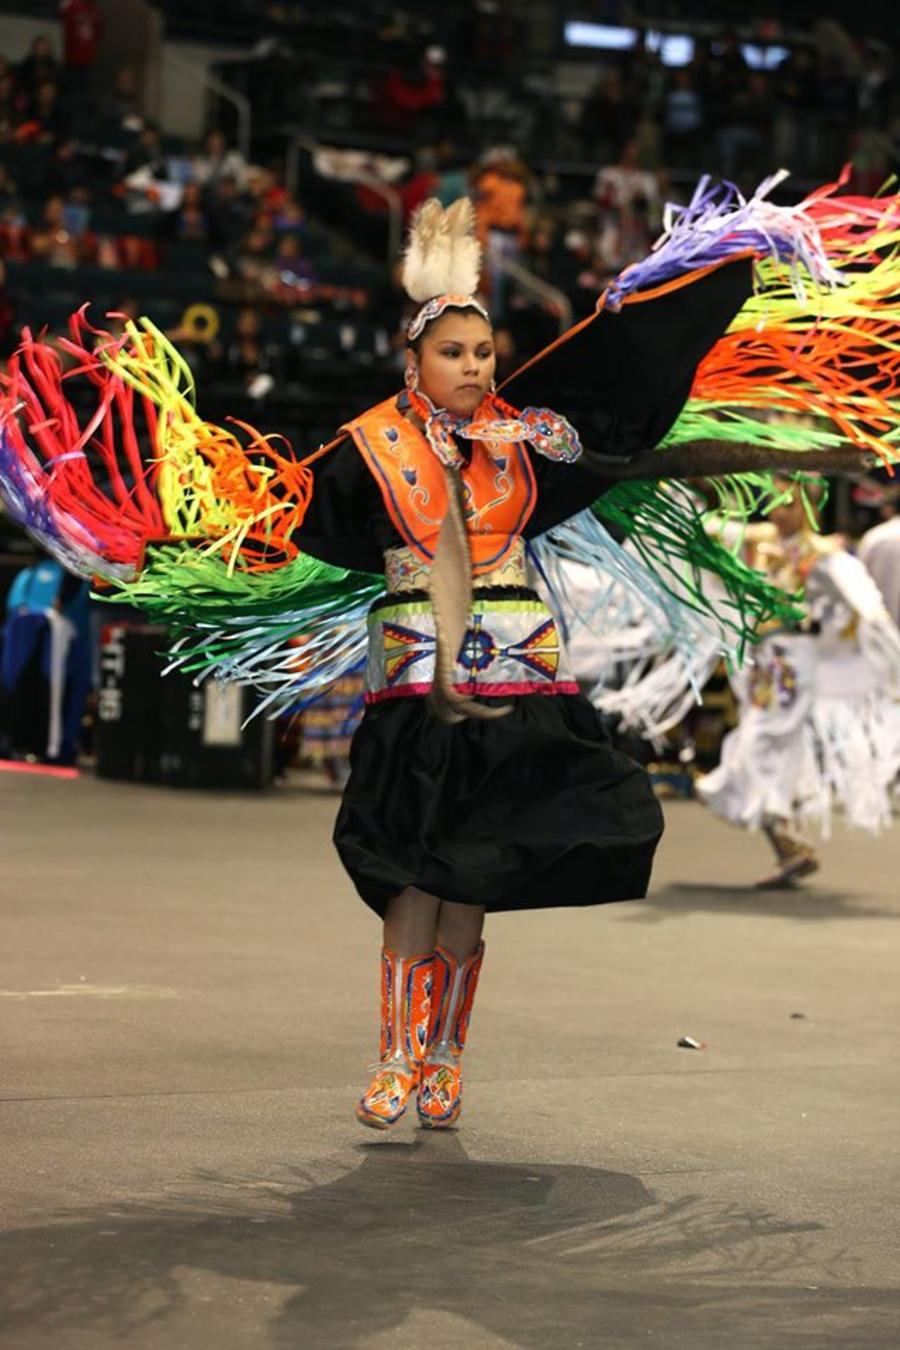 Fancy Shawl Dance Manito Ahbee